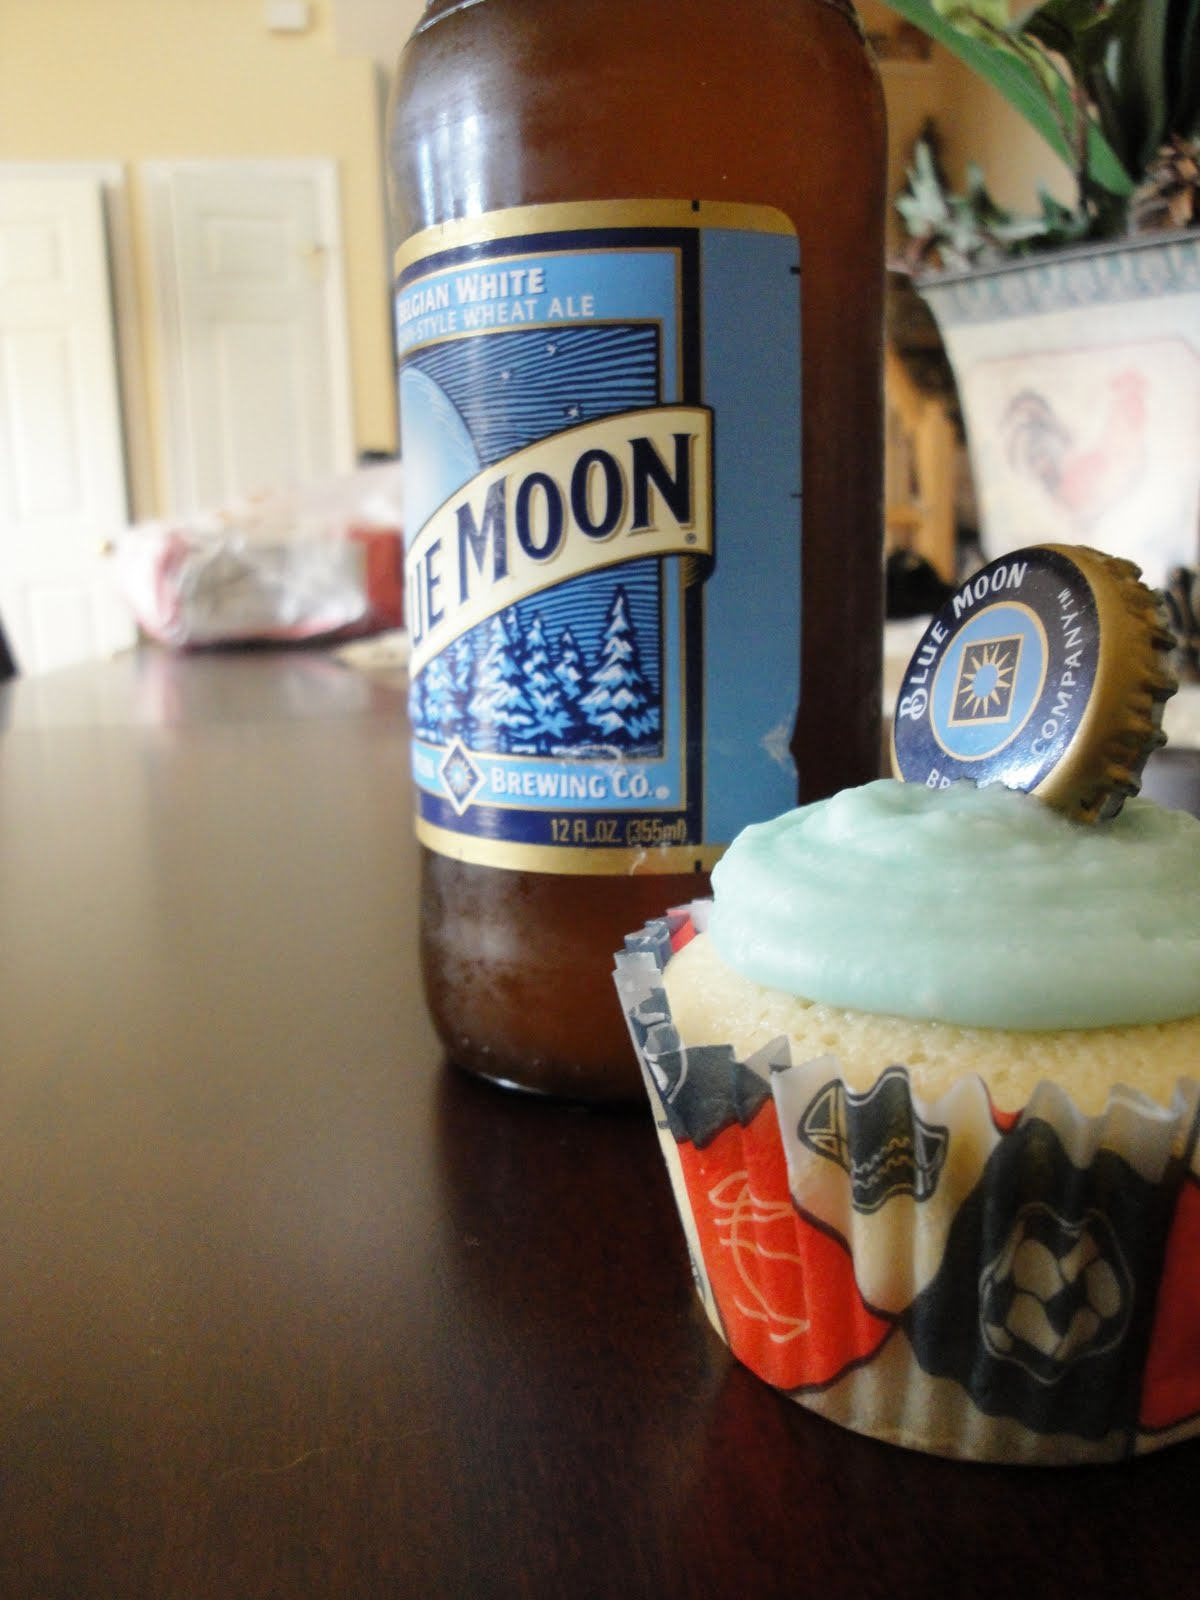 White apron ale - The Cupcakes Are Based On White Cake They Re Moist And Soft They Re Baked With A Cup Of Blue Moon In The Batter Then Brushed Over A 3 Times With Some More